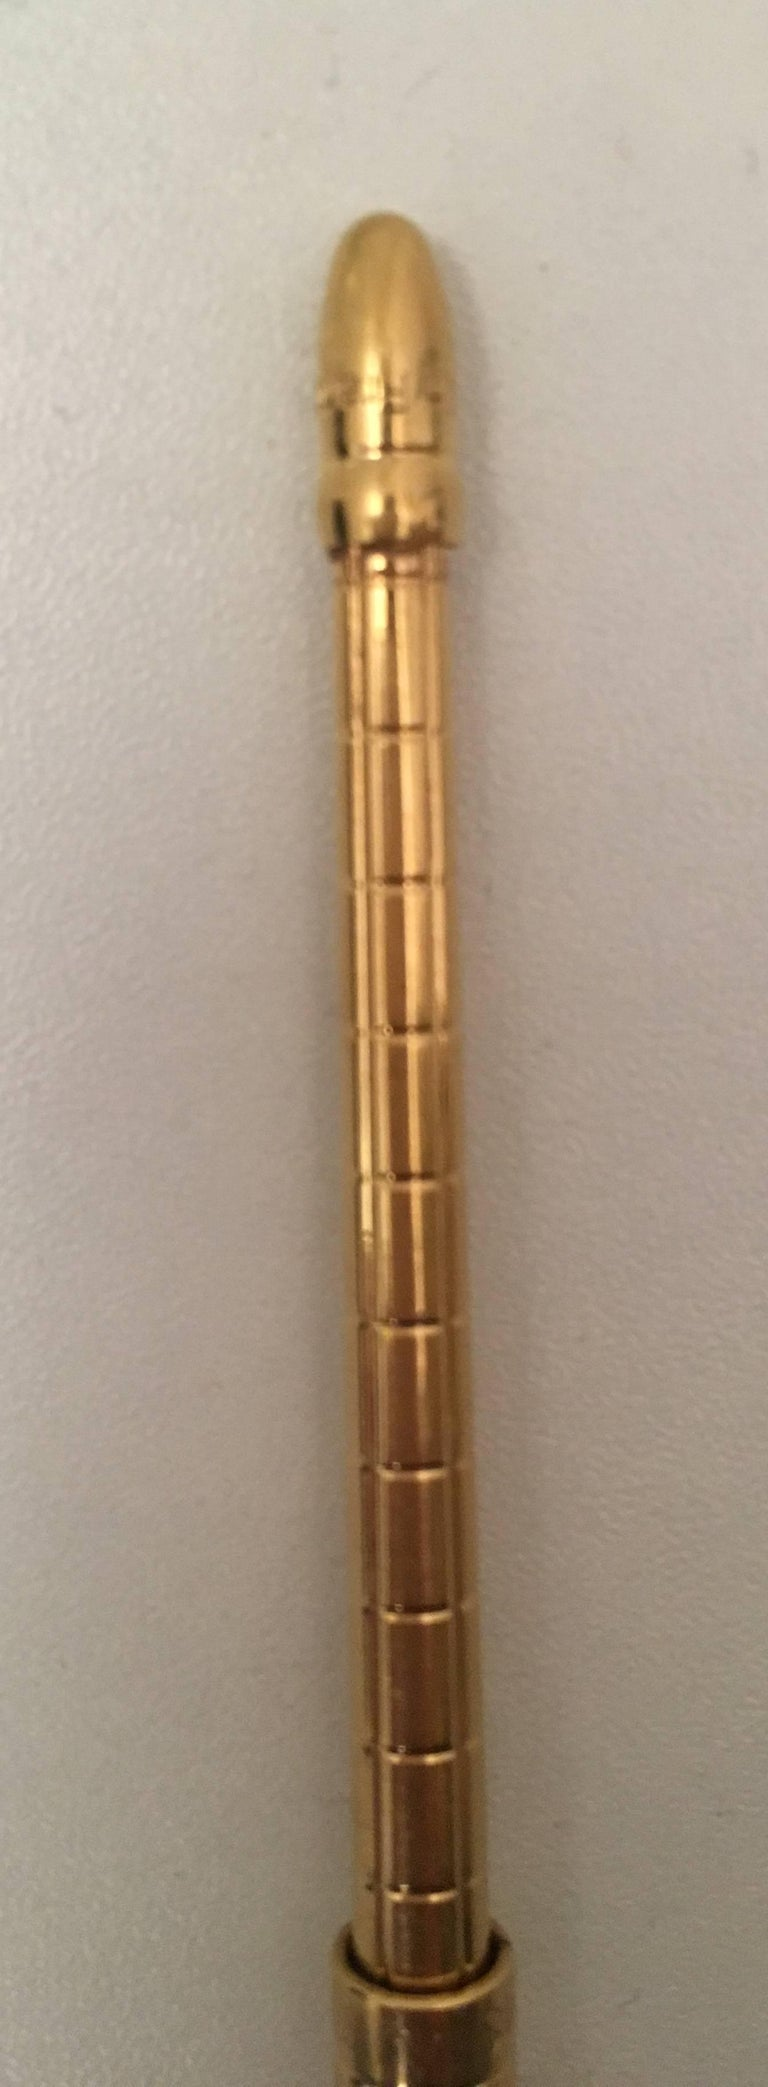 New Louis Vuitton Golden Agenda Ballpoint Pen w/ Refill For Sale 5